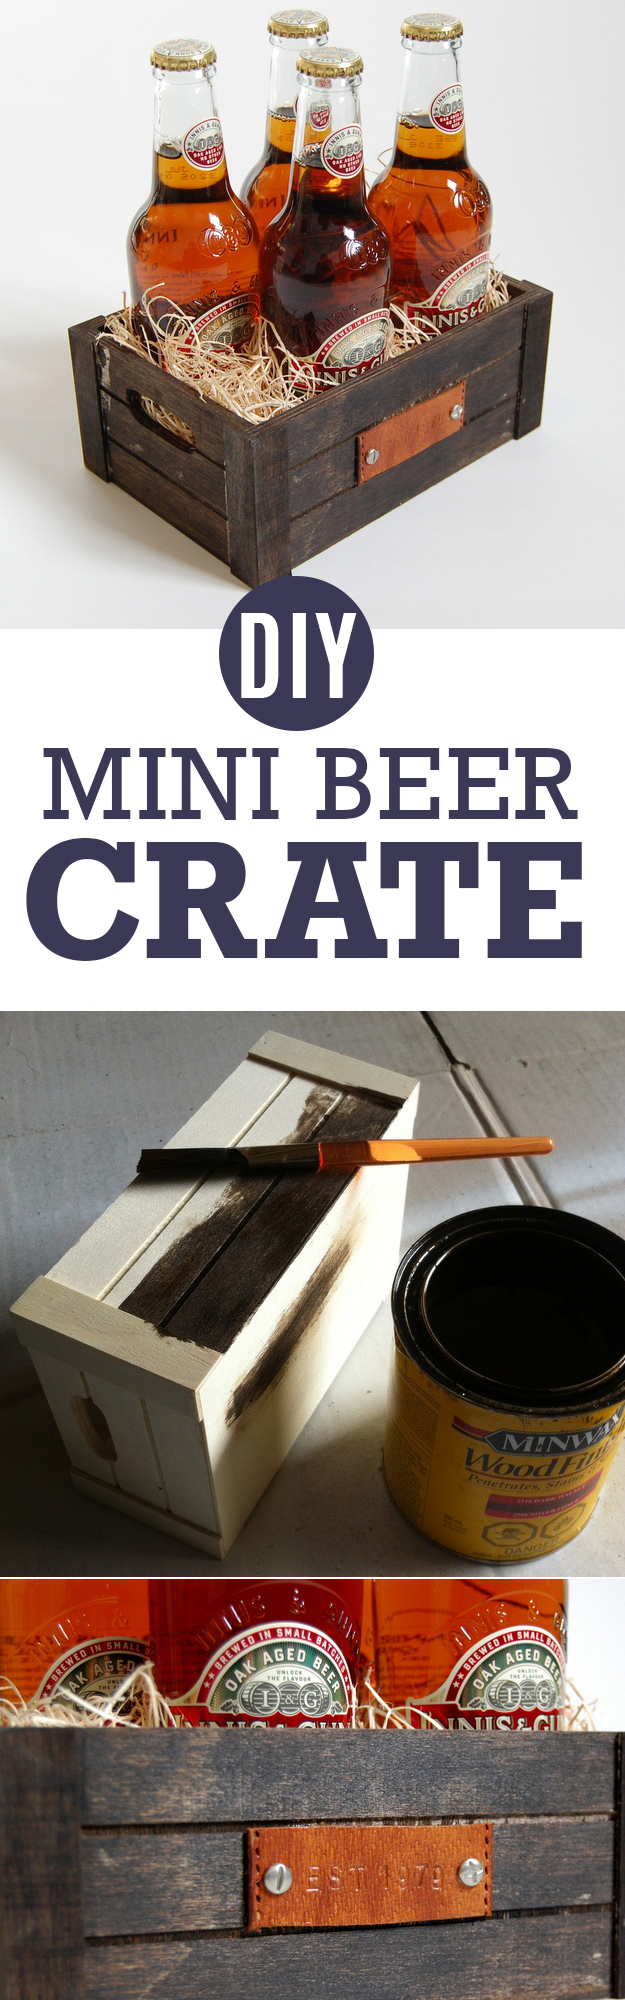 DIY Gifts For Men | Awesome Ideas for Your Boyfriend, Husband, Dad - Father , Brother and all the other important guys in your life. Cool Homemade DIY Crafts Men Will Truly Love to Receive for Christmas, Birthdays, Anniversaries and Valentine's Day | Personalized-Mini-Beer-Crate | http://diyjoy.com/diy-gifts-for-men-pinterest